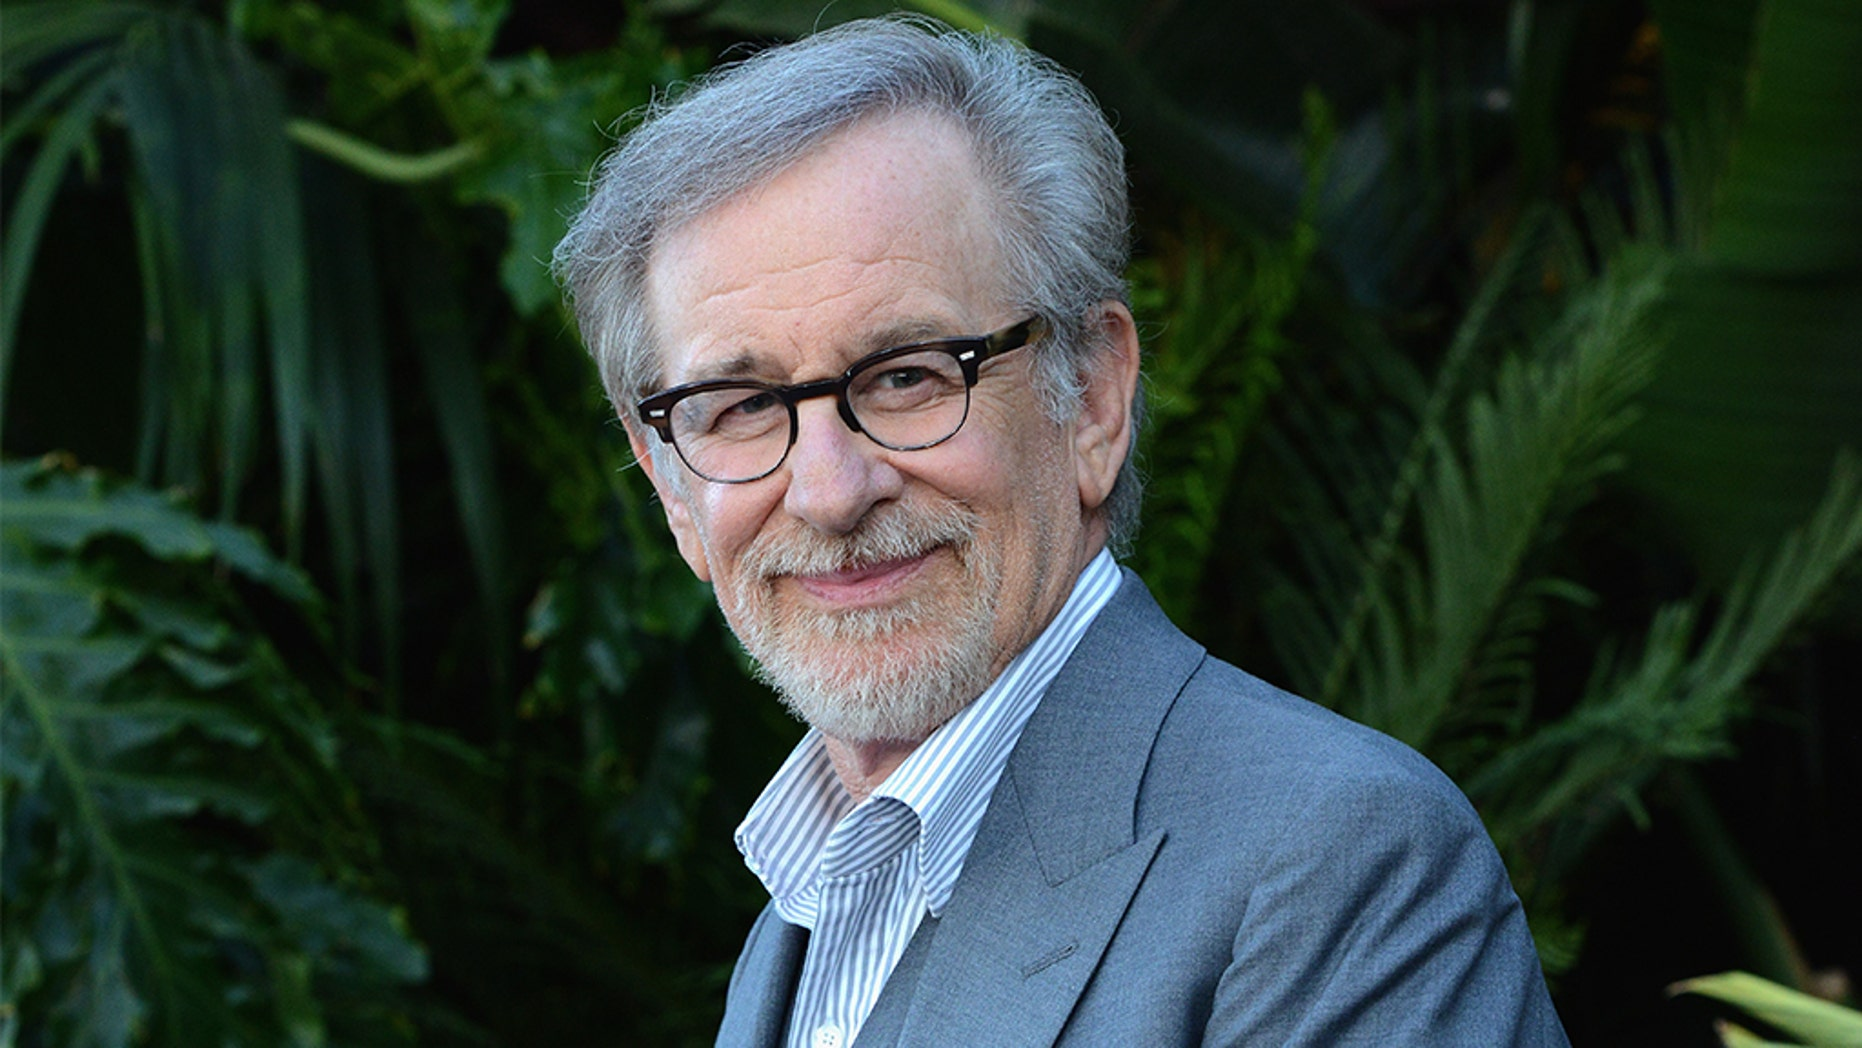 Steven Spielberg discussed the relevance of his film 'Schindler's List' in a recent interview.